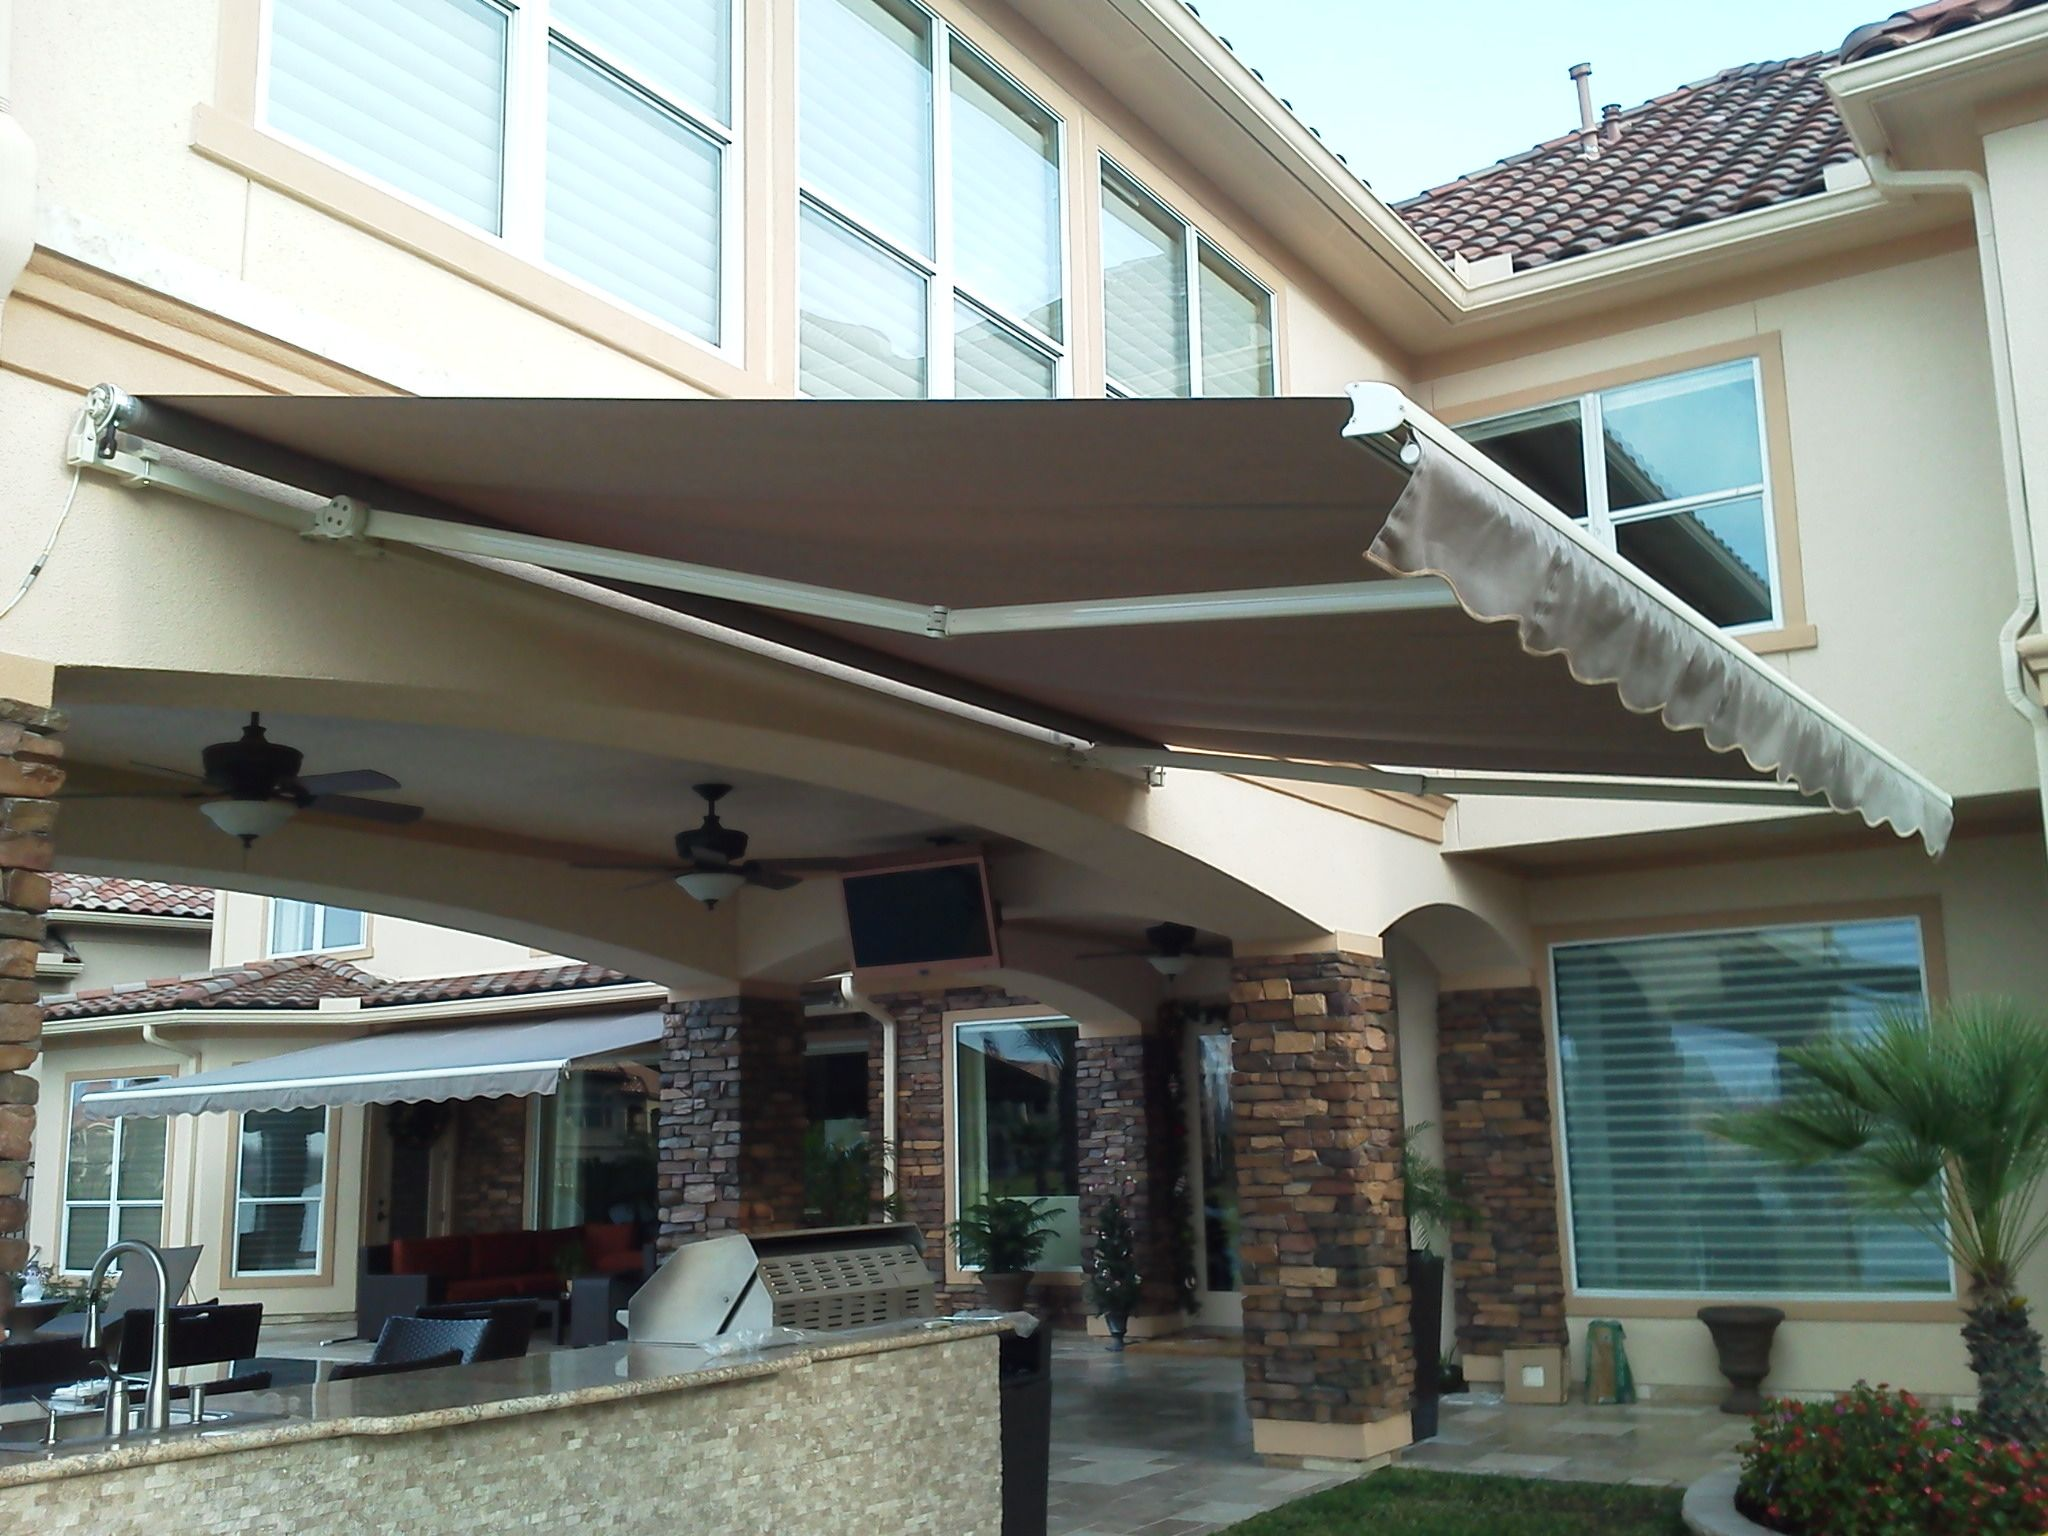 Awning Sunsetter Motorized Awning